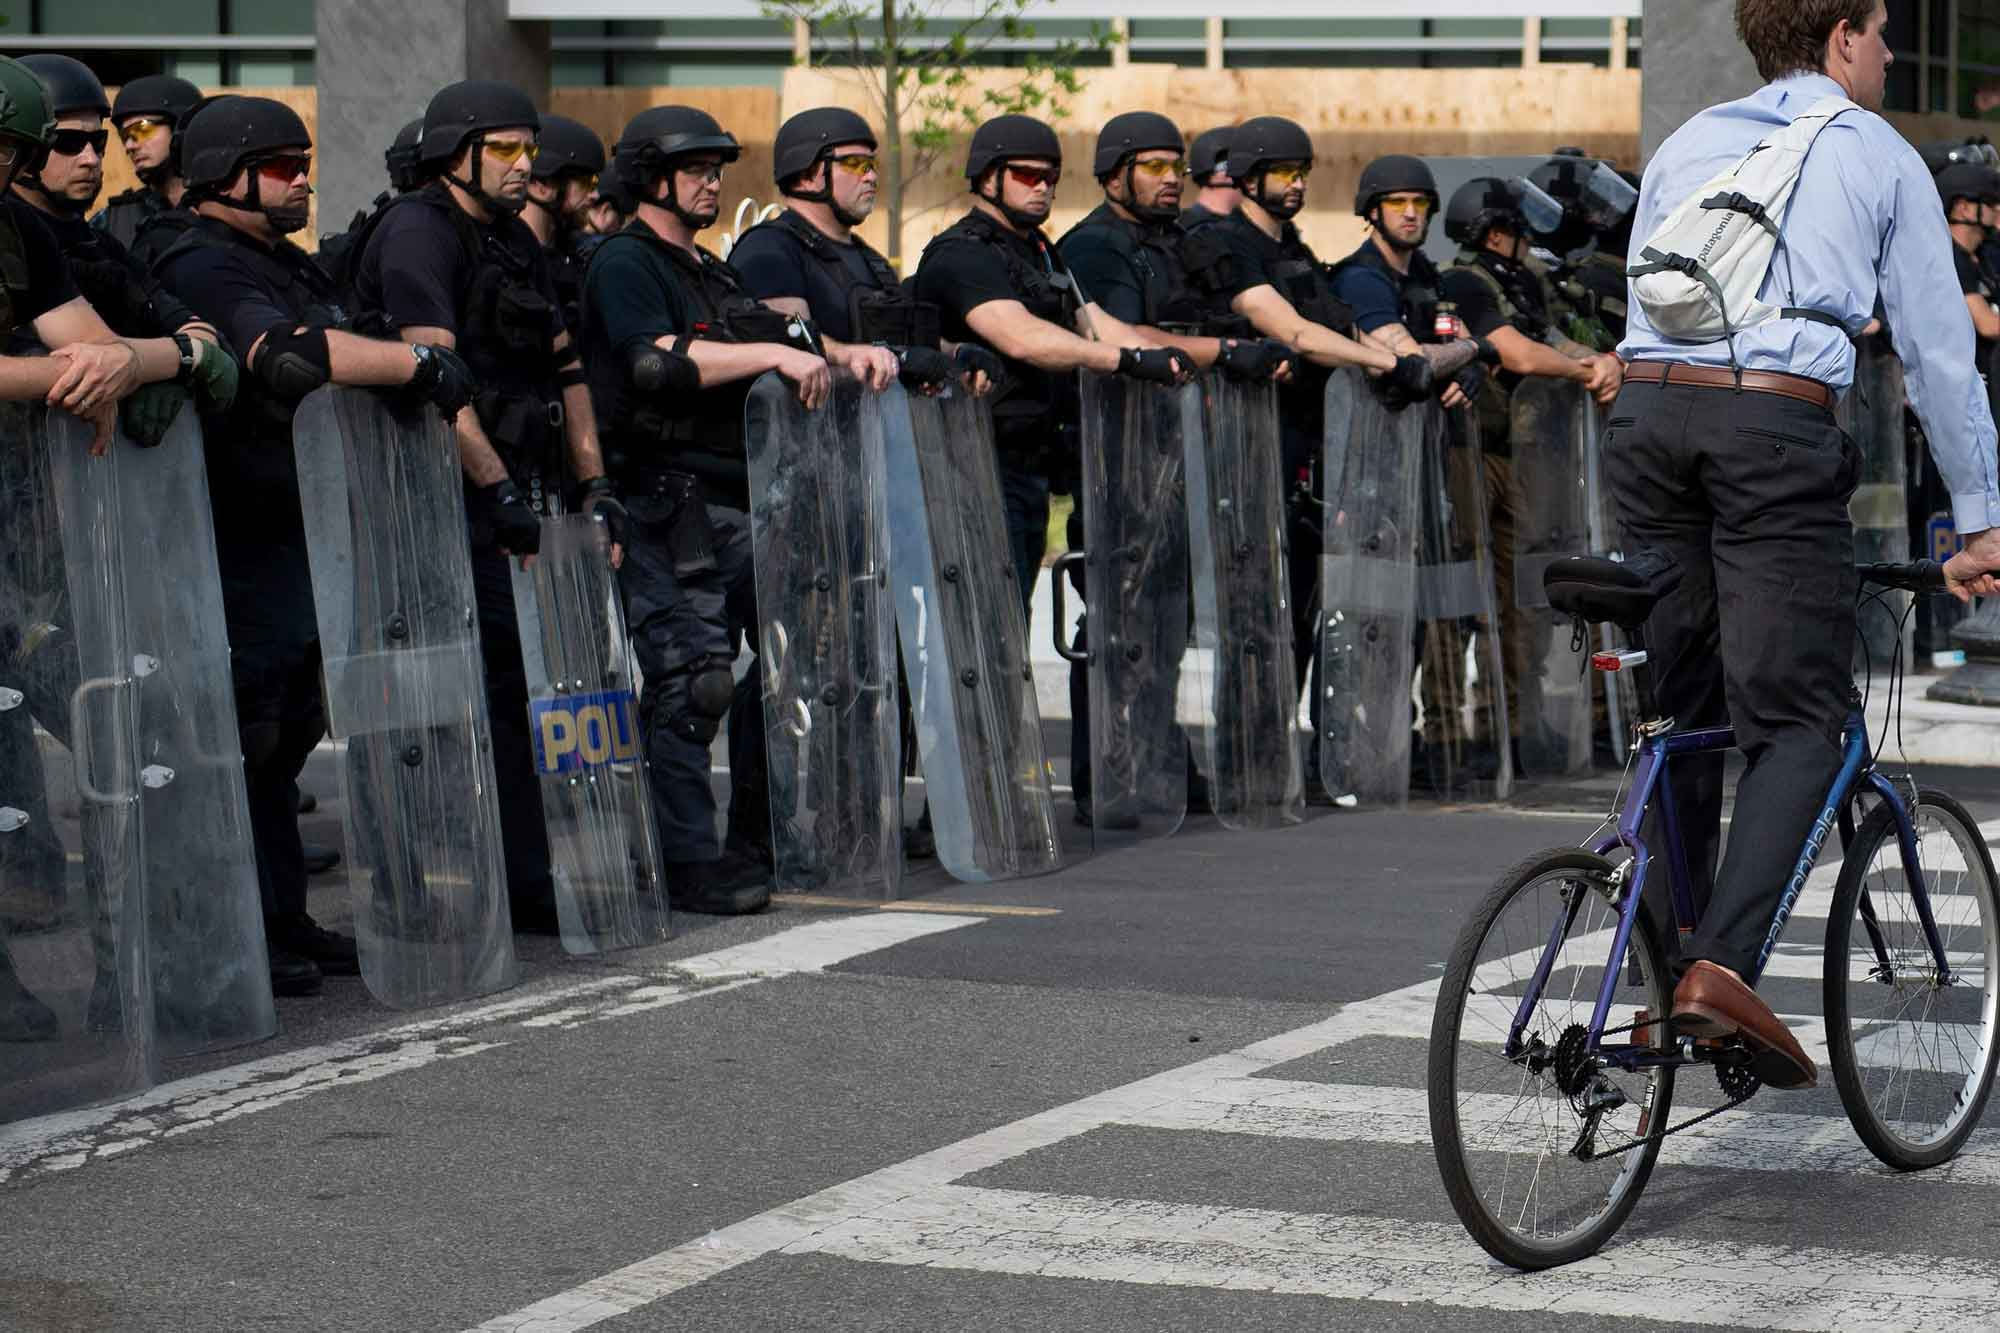 Defense bill would stop unidentified federal forces from patrolling American streets